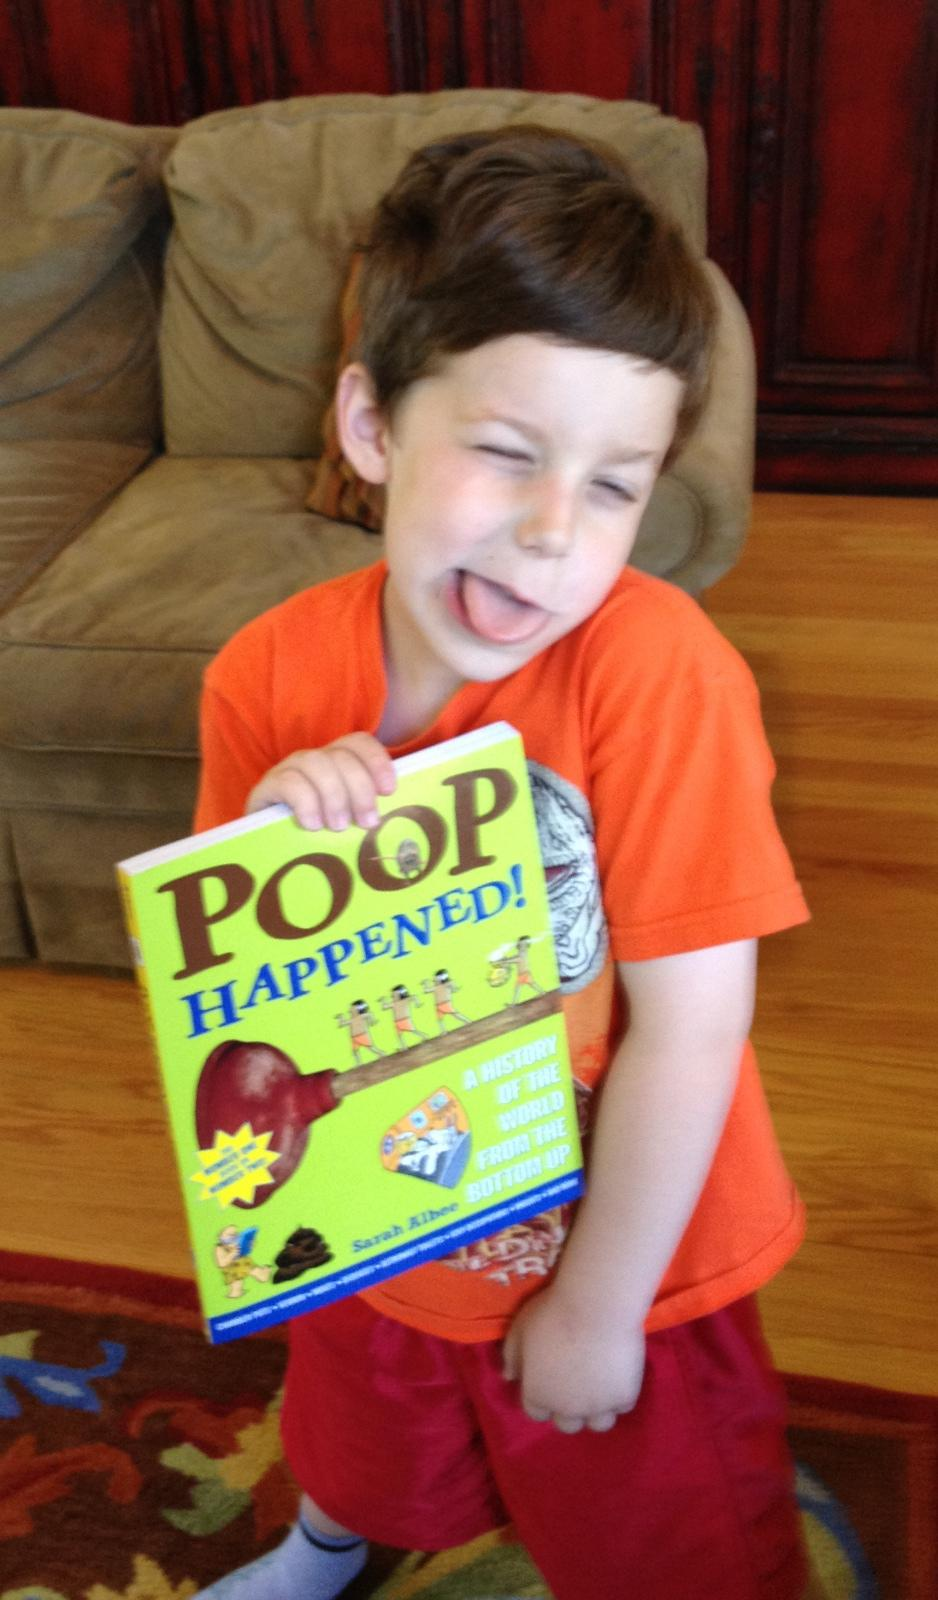 Poop Happens, the #1 book on going #2